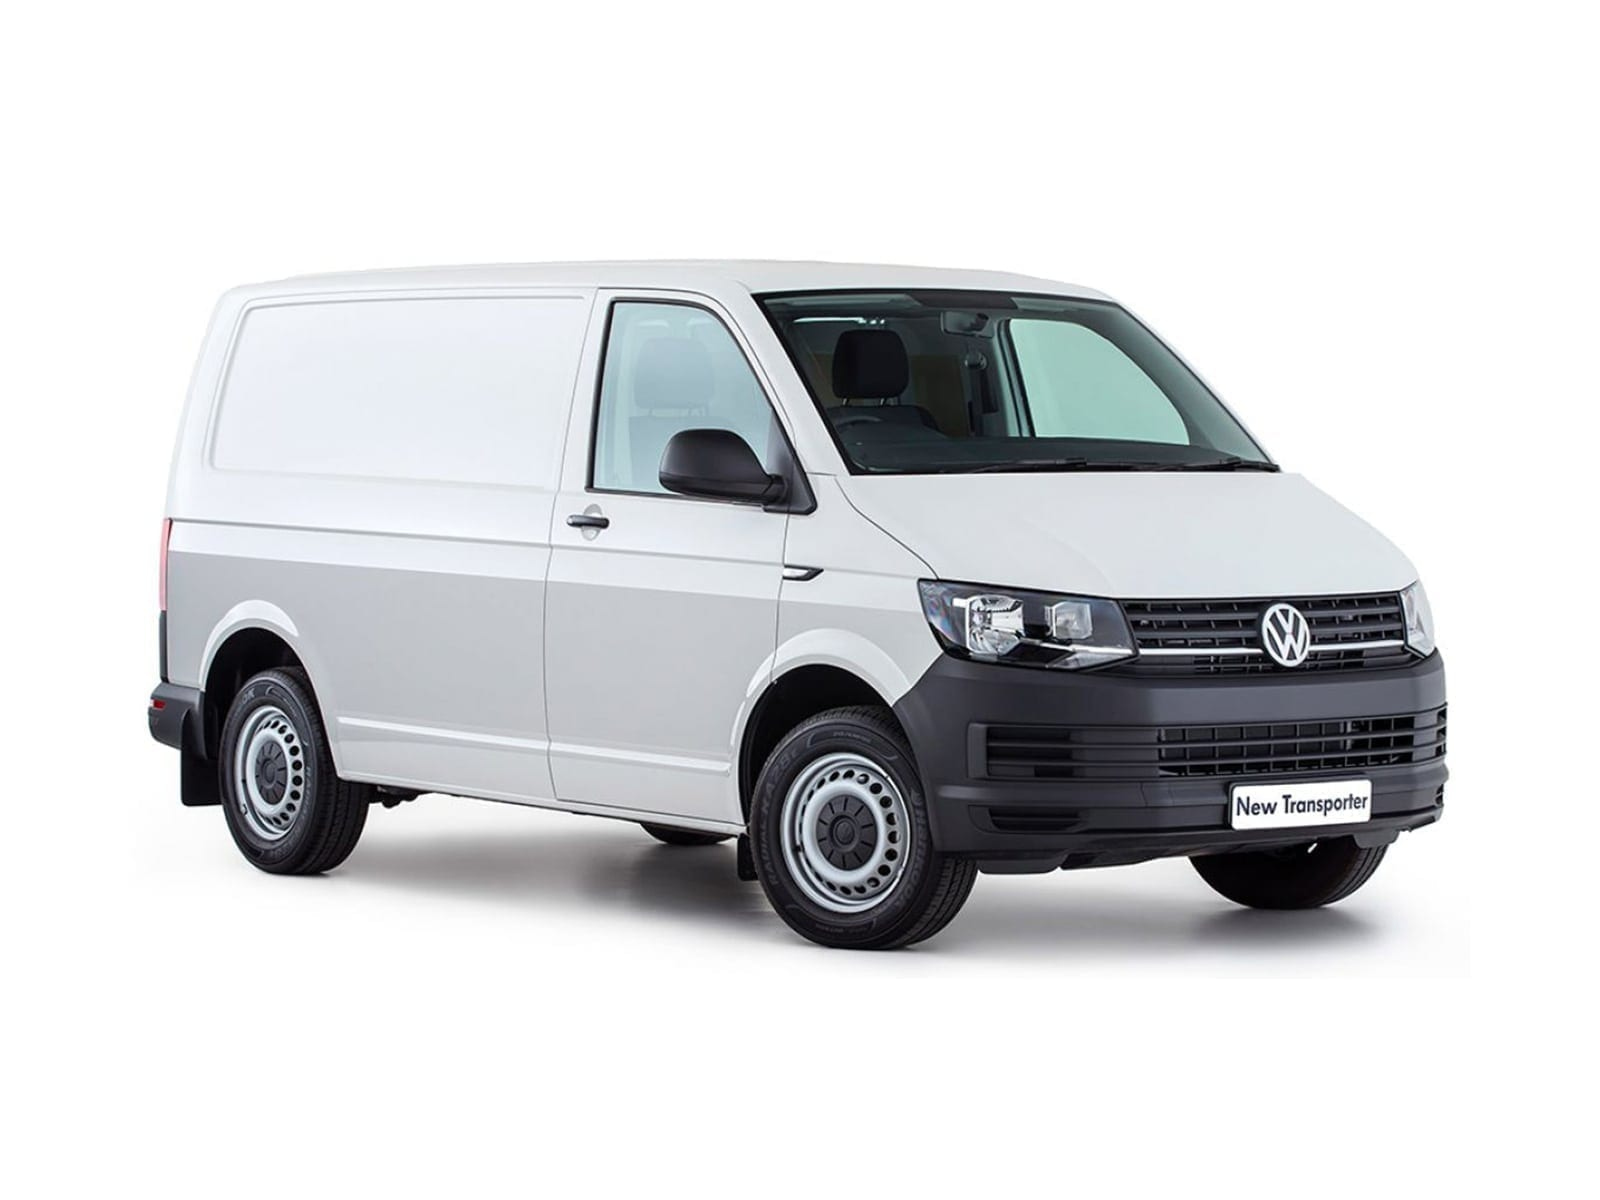 Vw Transporter Startline Affordable And Available At